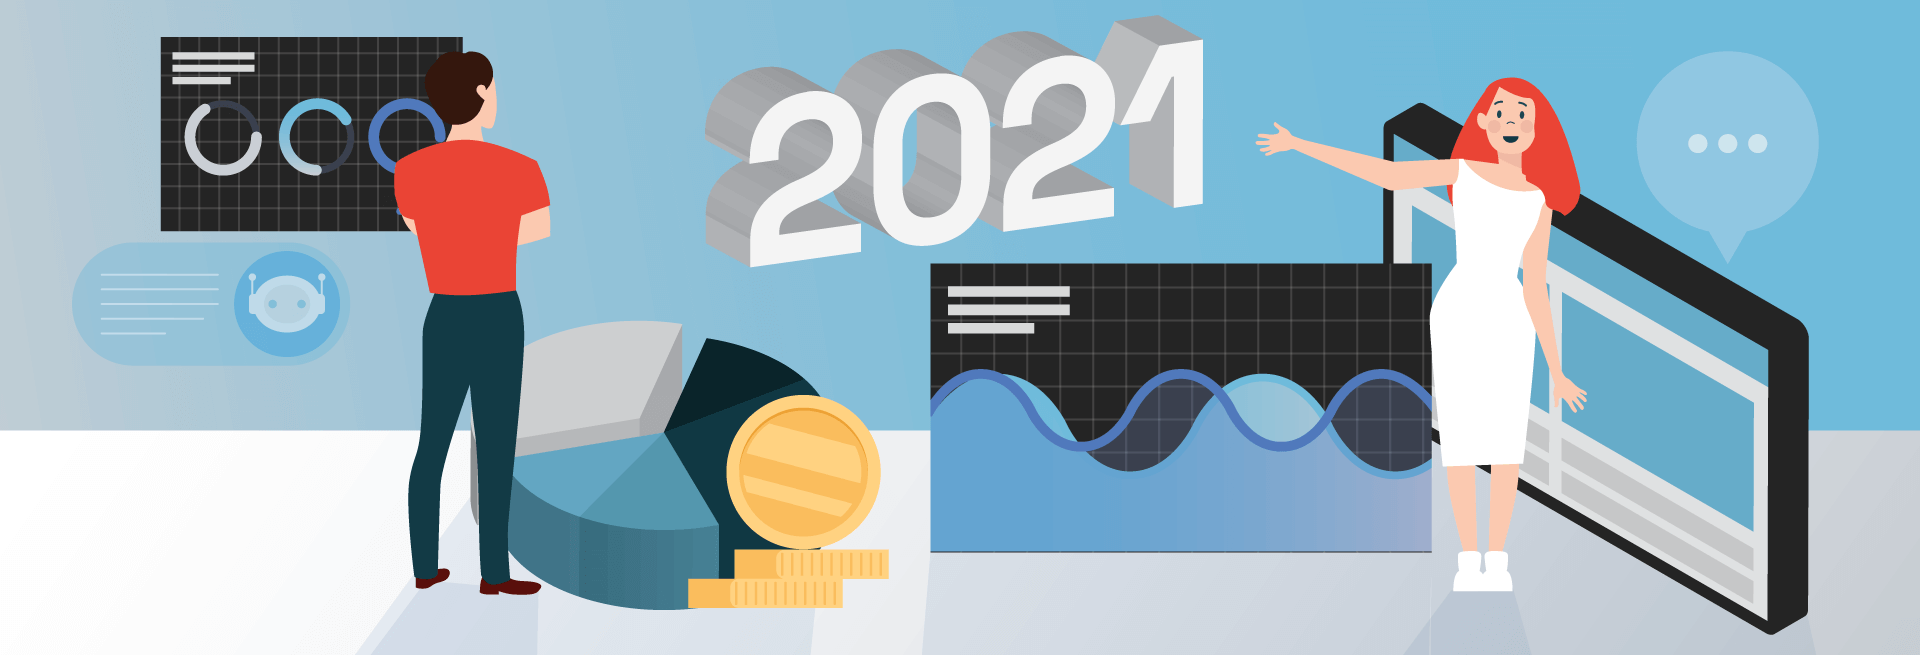 Programmatic-Advertising-Industry-Trends-for-2021-cover-picture